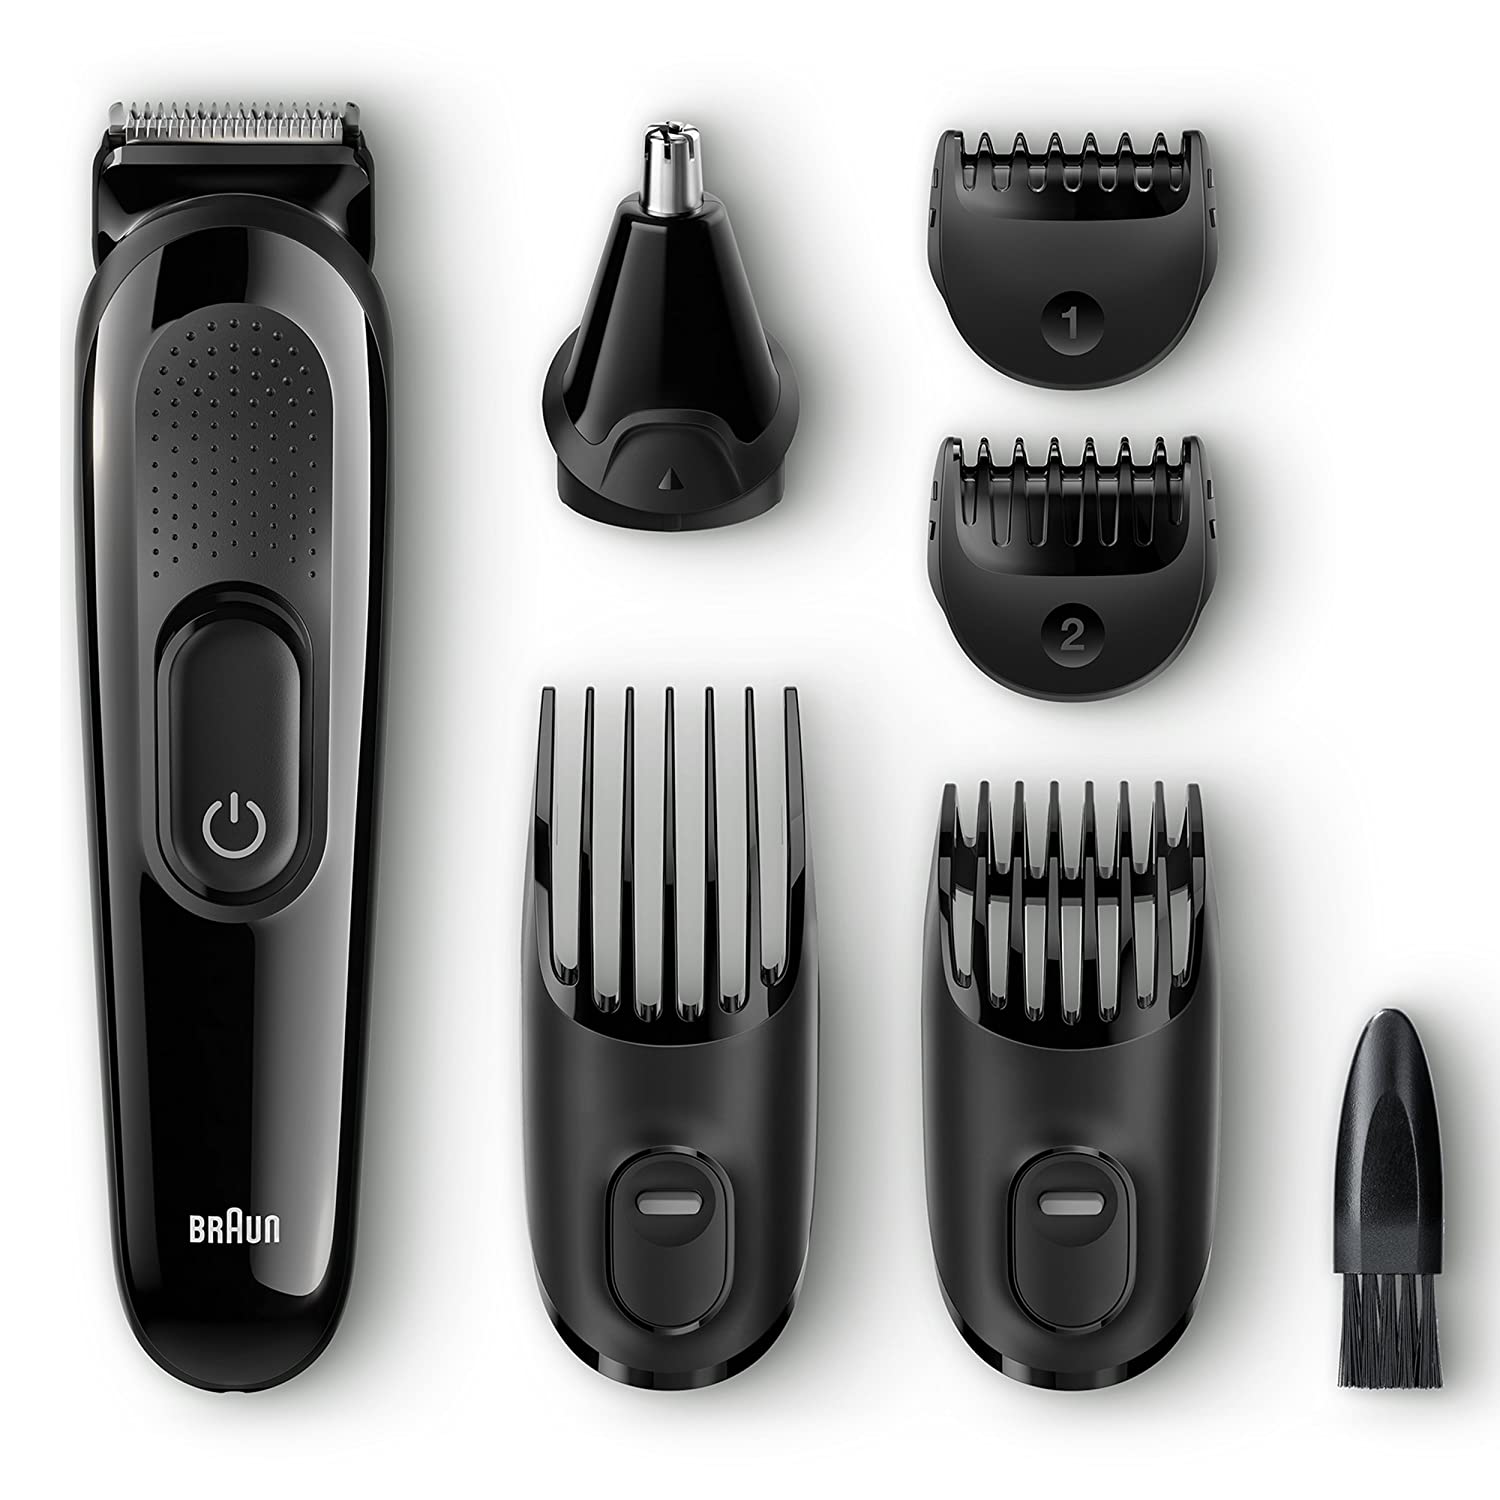 Braun MGK3020 Men's Beard Trimmer for Hair/Hair Clippers/Head Trimming, Grooming Kit, 6-in1 Precision Trimmer, 13 Length Settings for Ultimate Precision